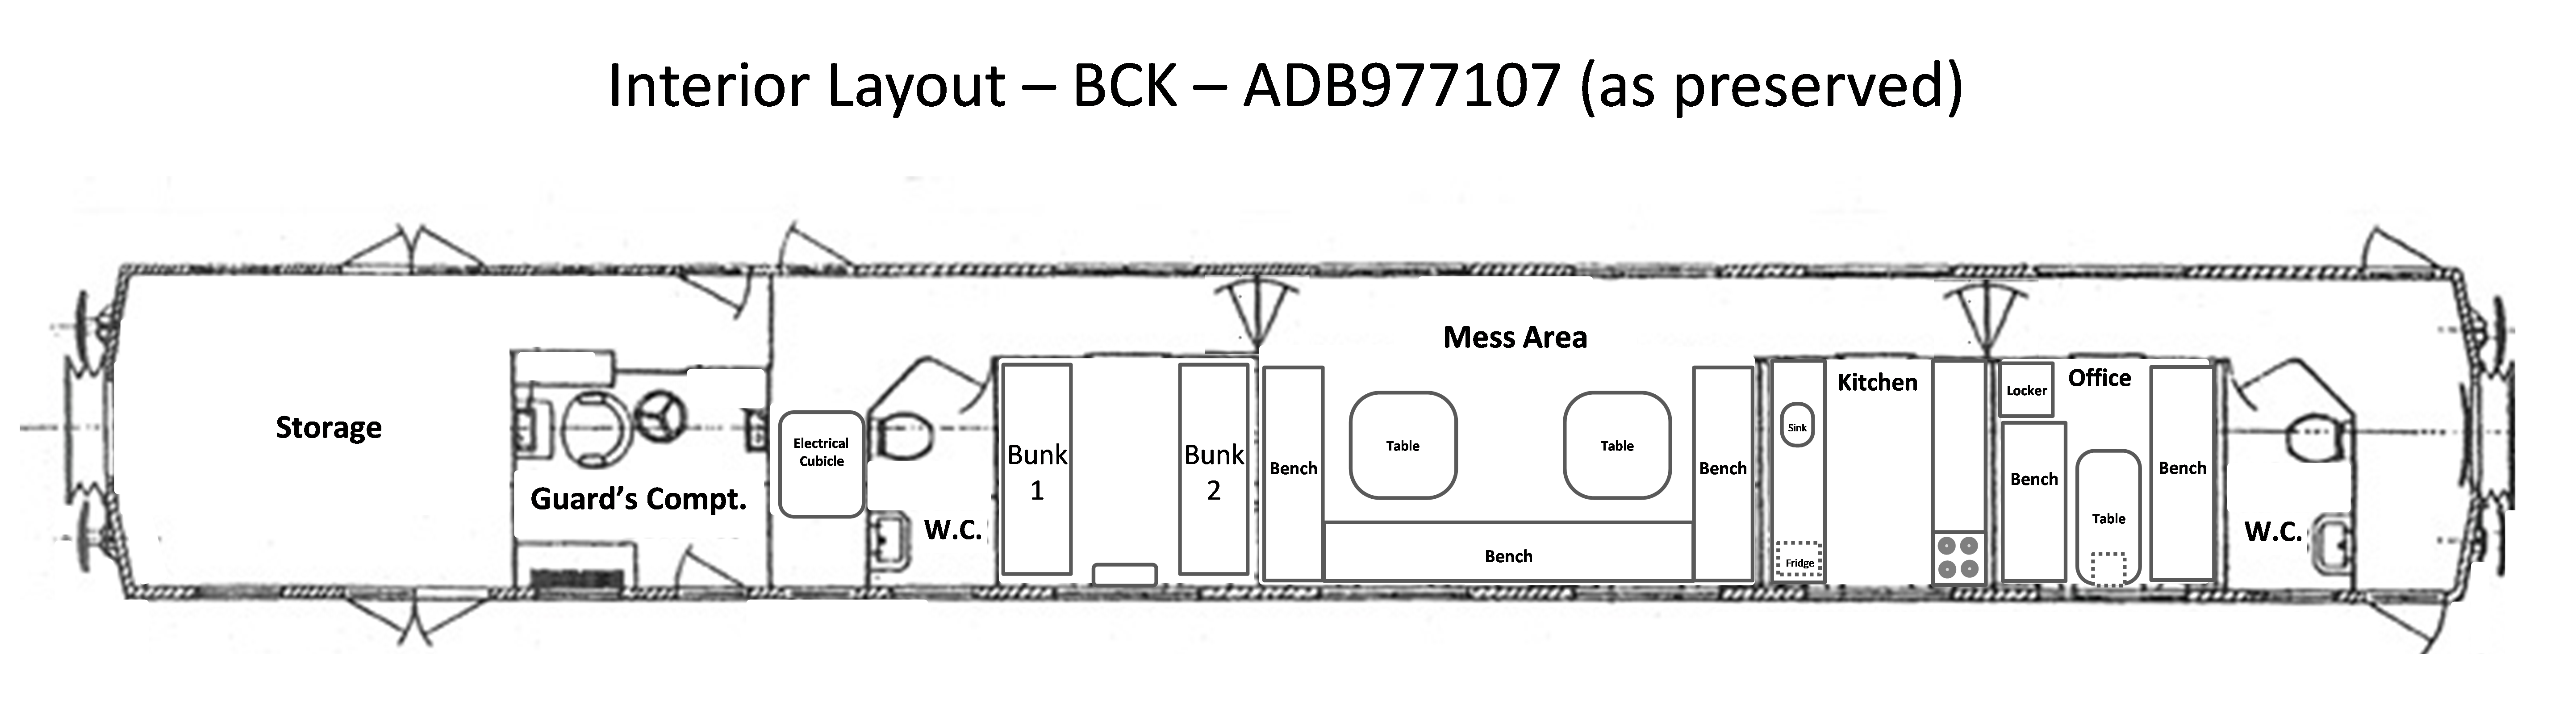 BCK - ADB977107 Layout Diagram As Preserved